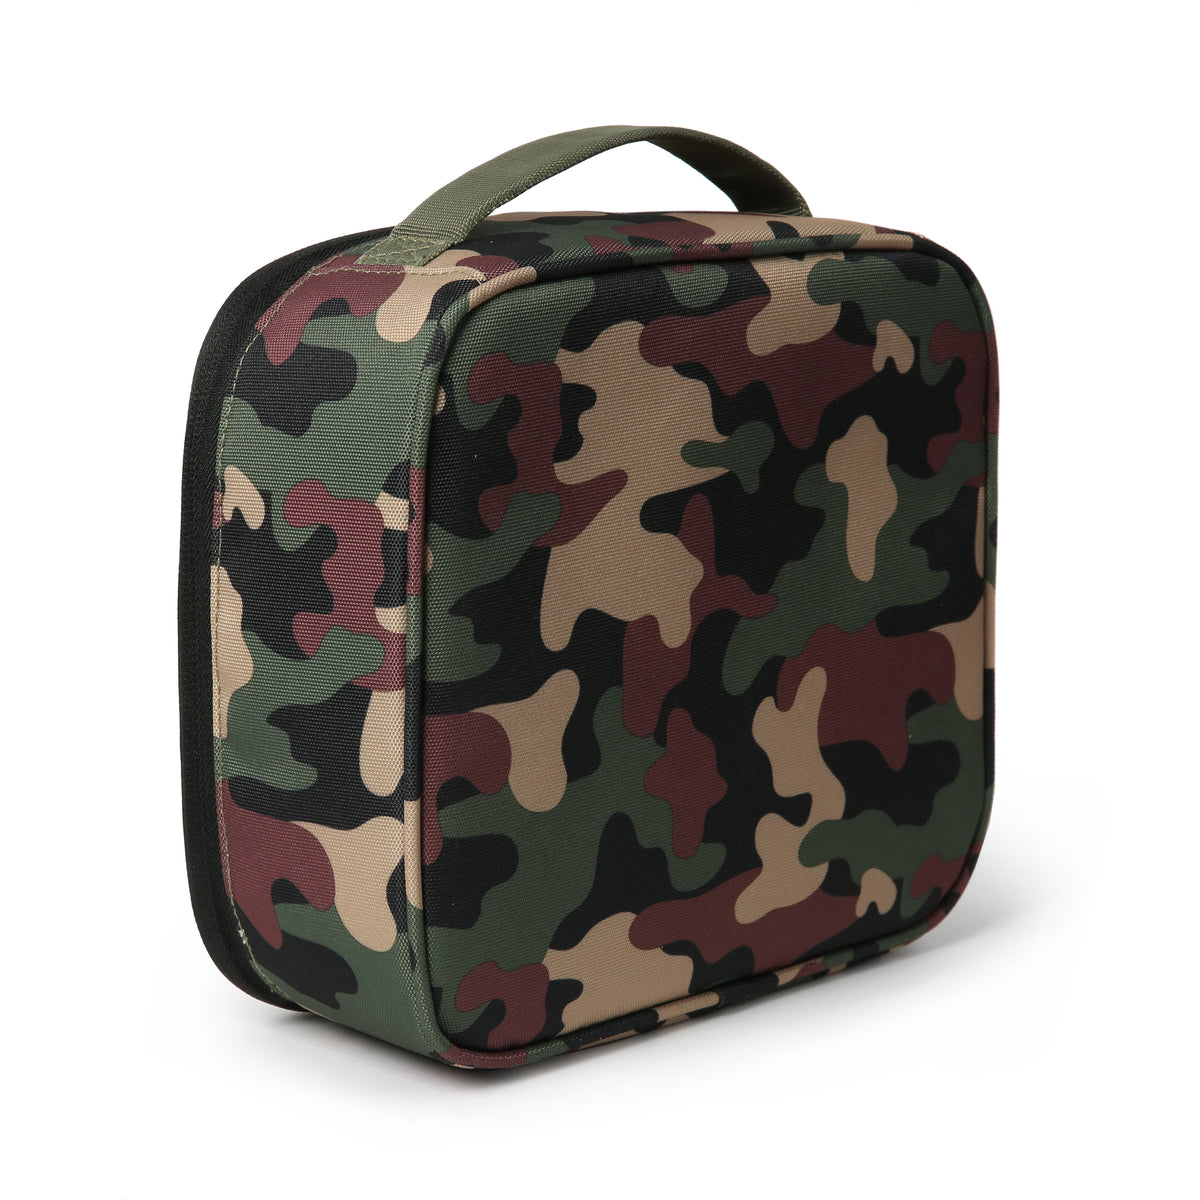 Arctic Zone® Classics Lunch Box - Camo - Back